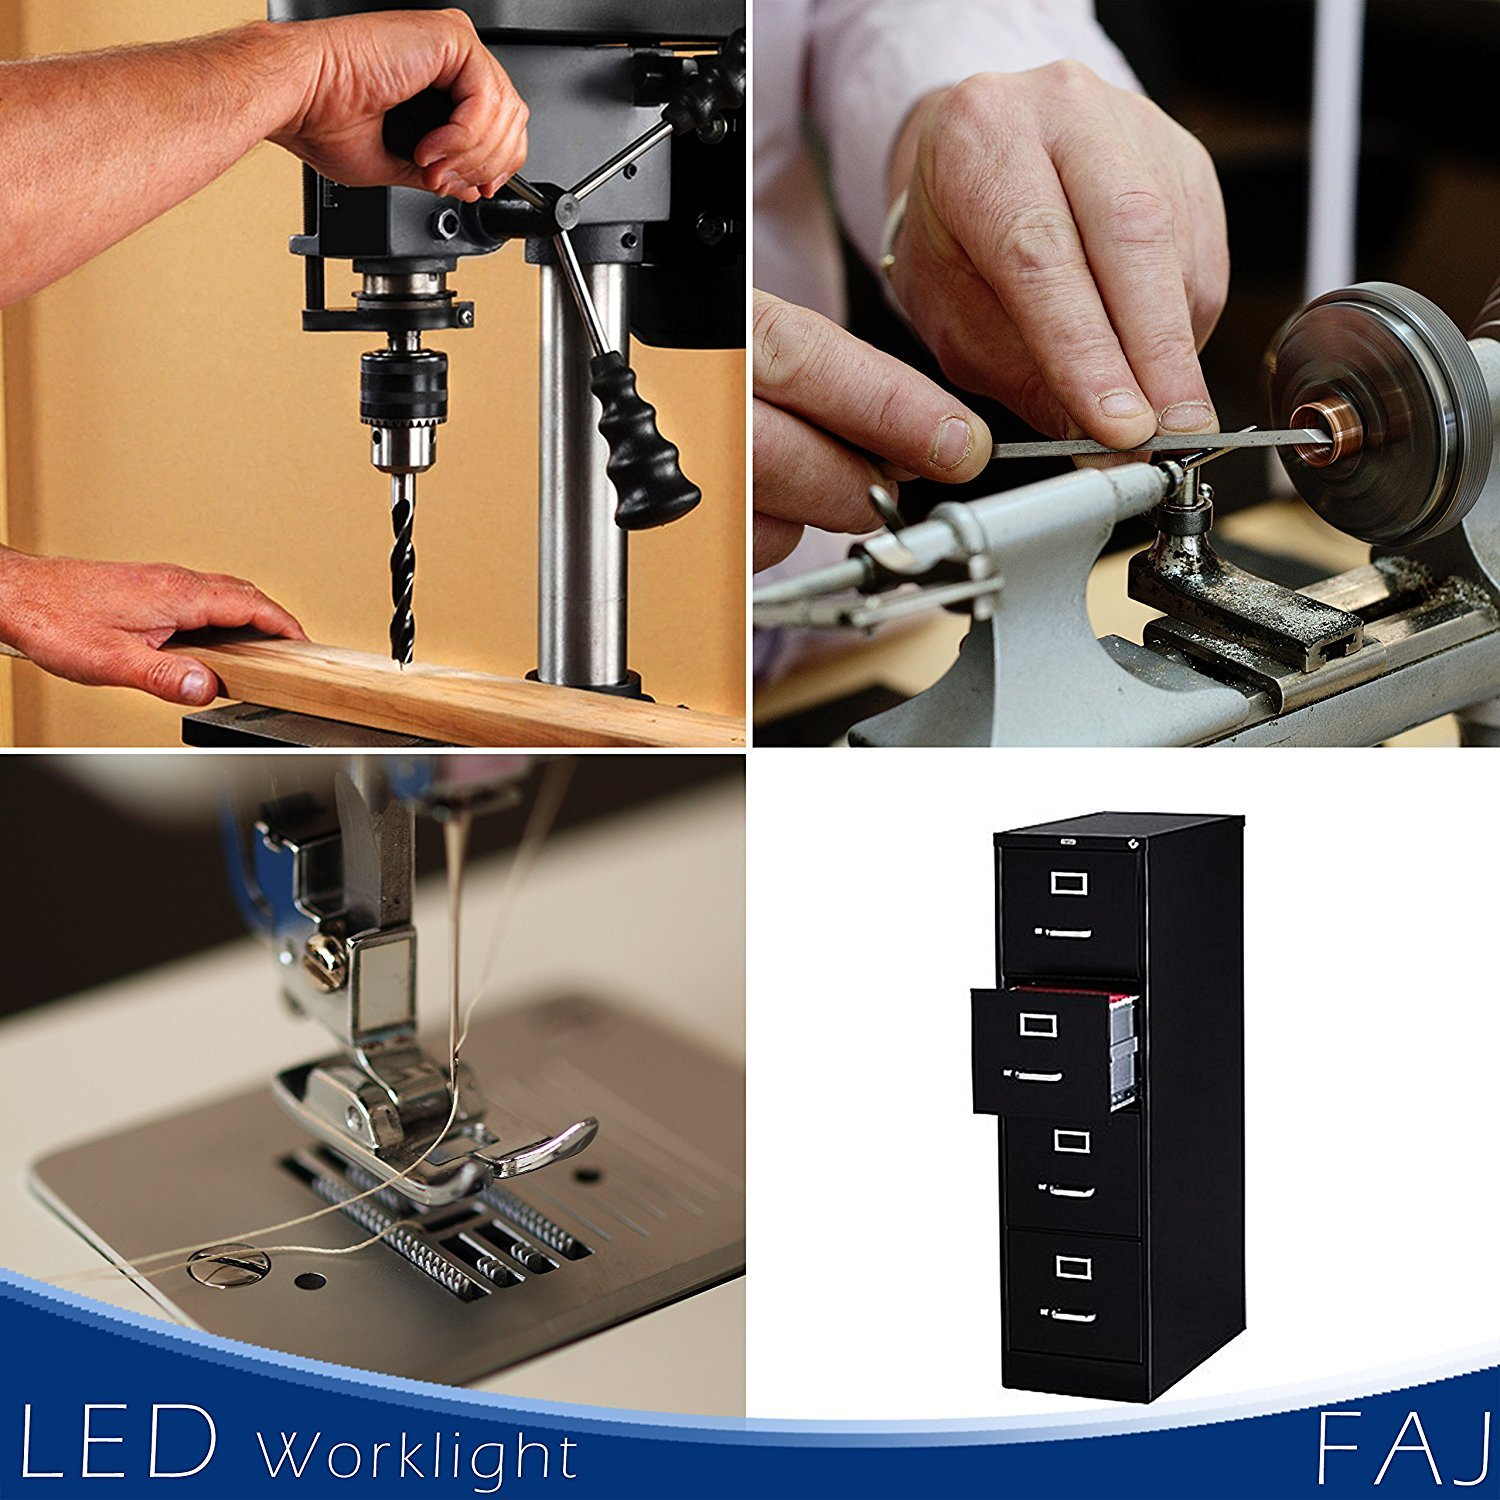 FAJ Magnetic 12-Inches Extra Long Flexible Gooseneck Arm Multifunctional Worklight, Bright Daylight LEDs Sewing Machines, Lathes, Drill Presses, Workbenches, Music Stands (30 led) by FAJ (Image #7)